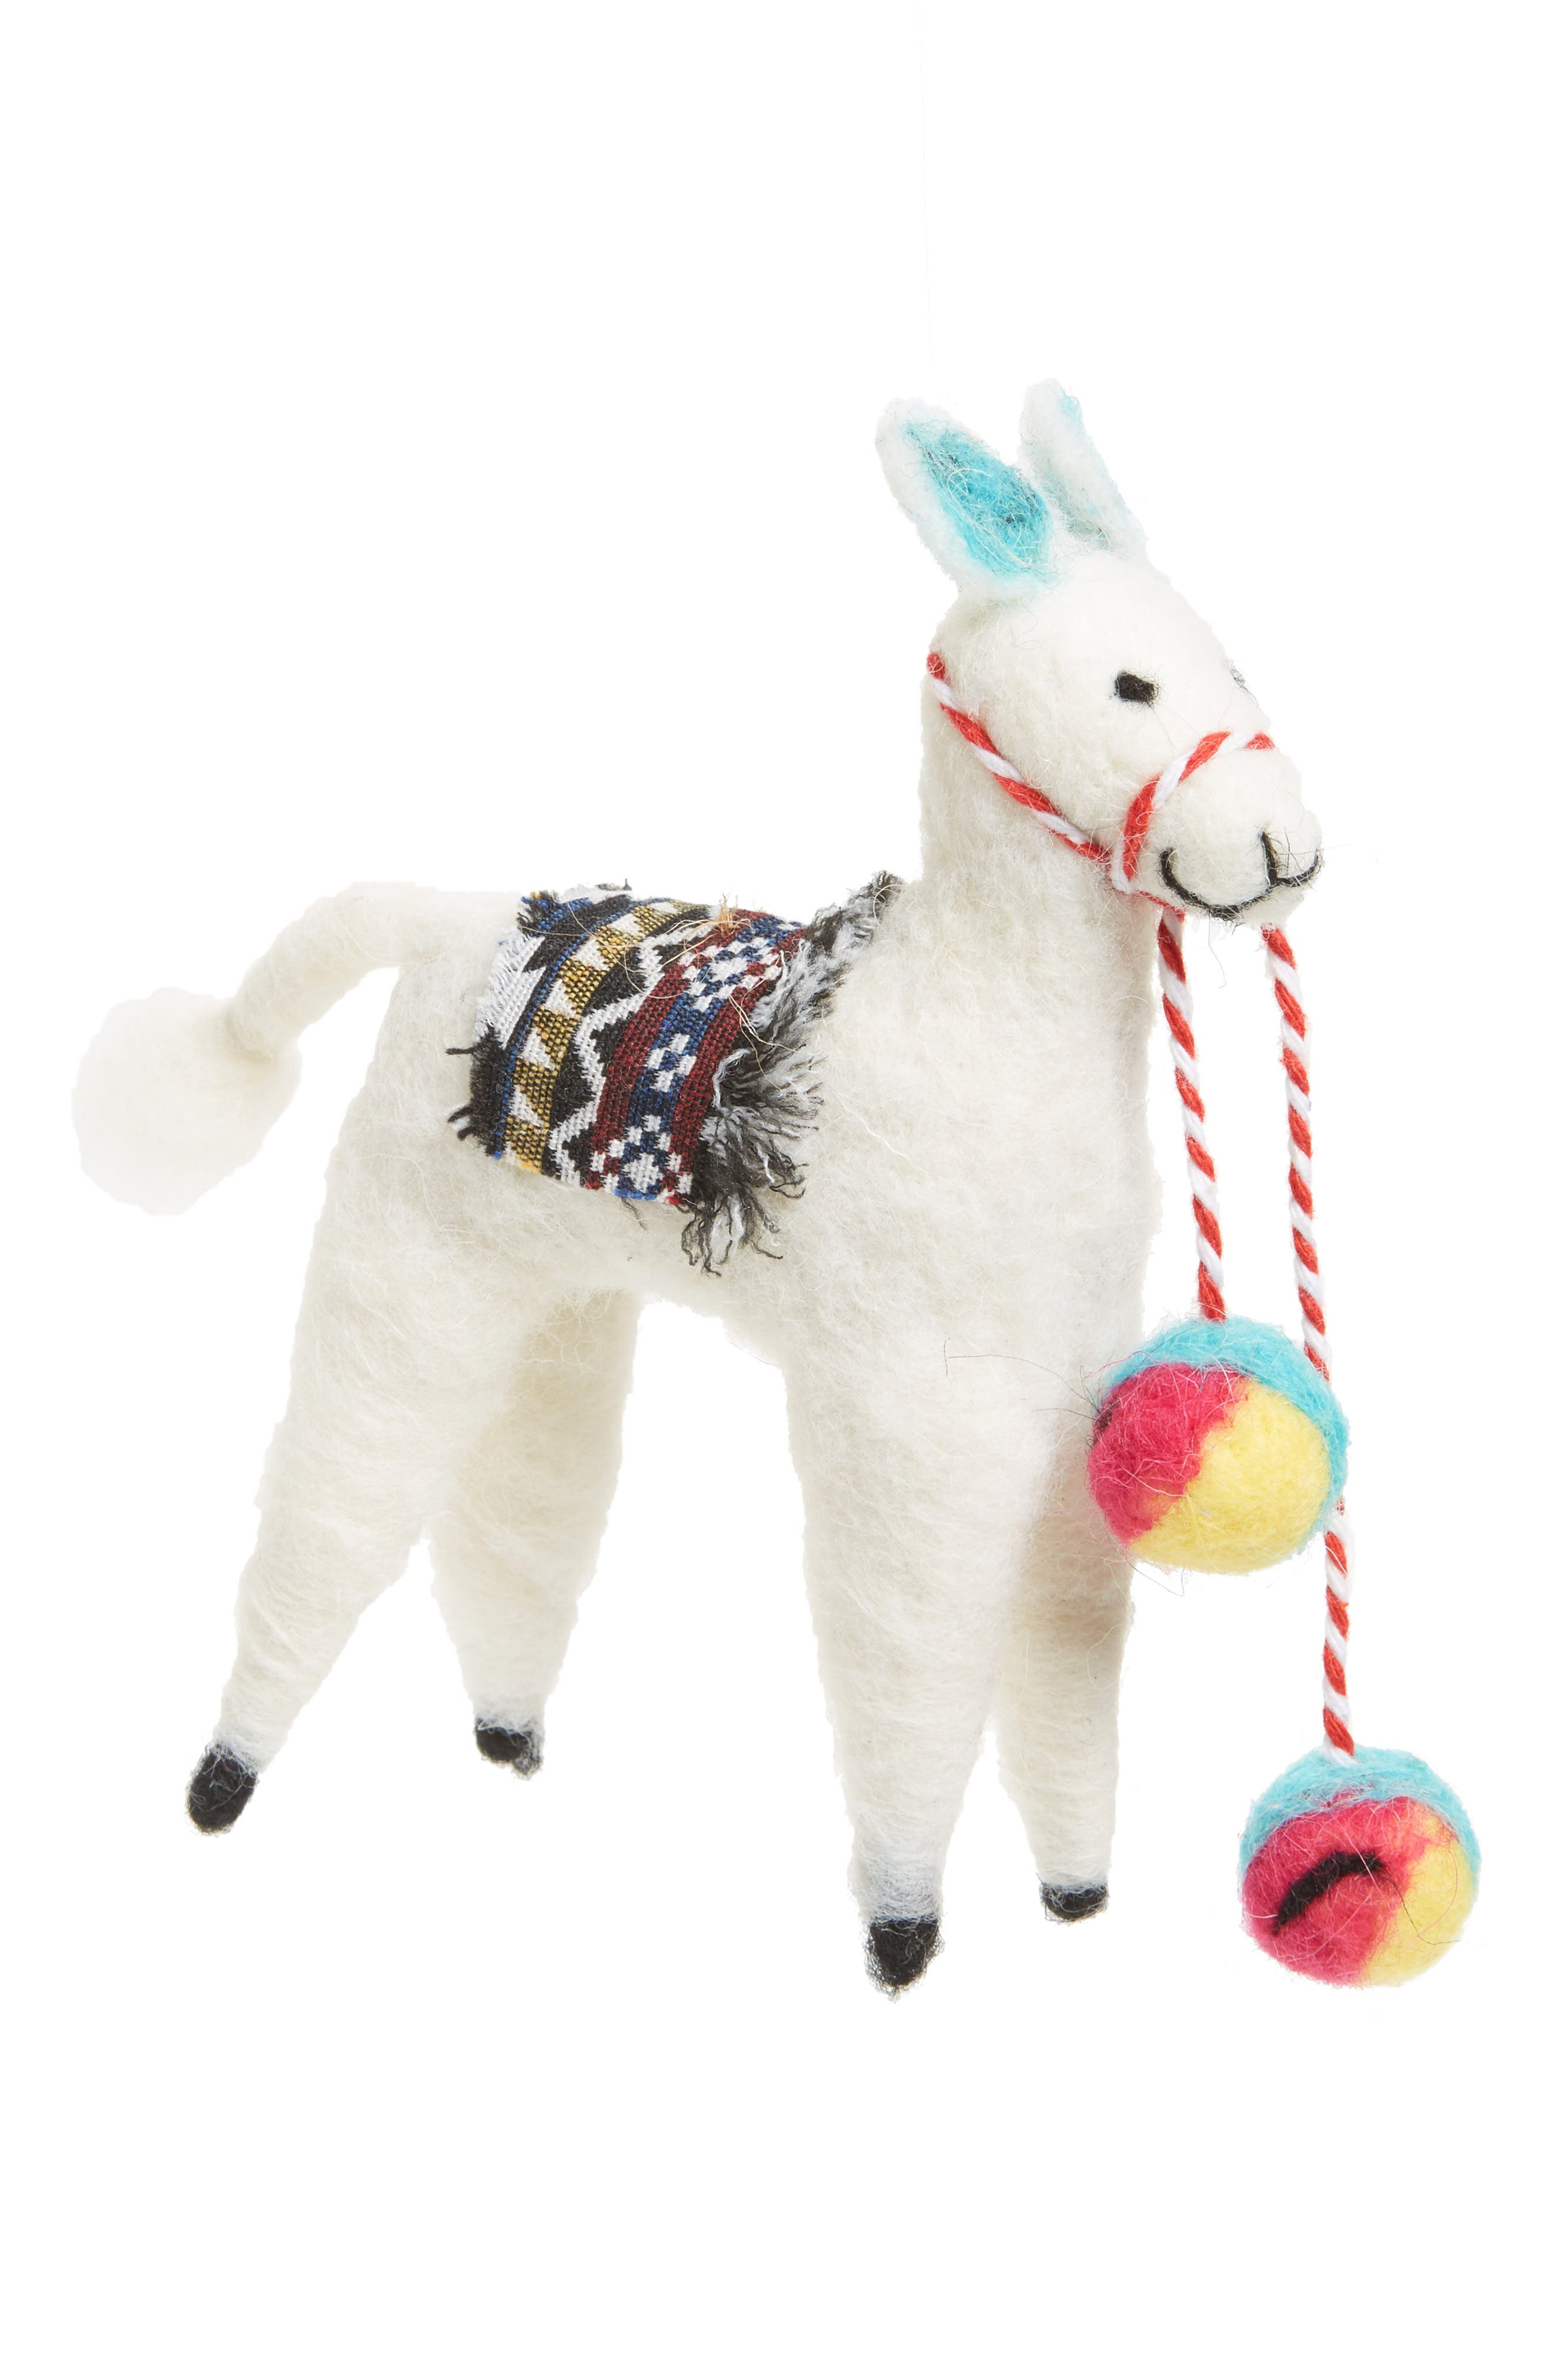 Nordstrom at Home Llama Felt Ornament